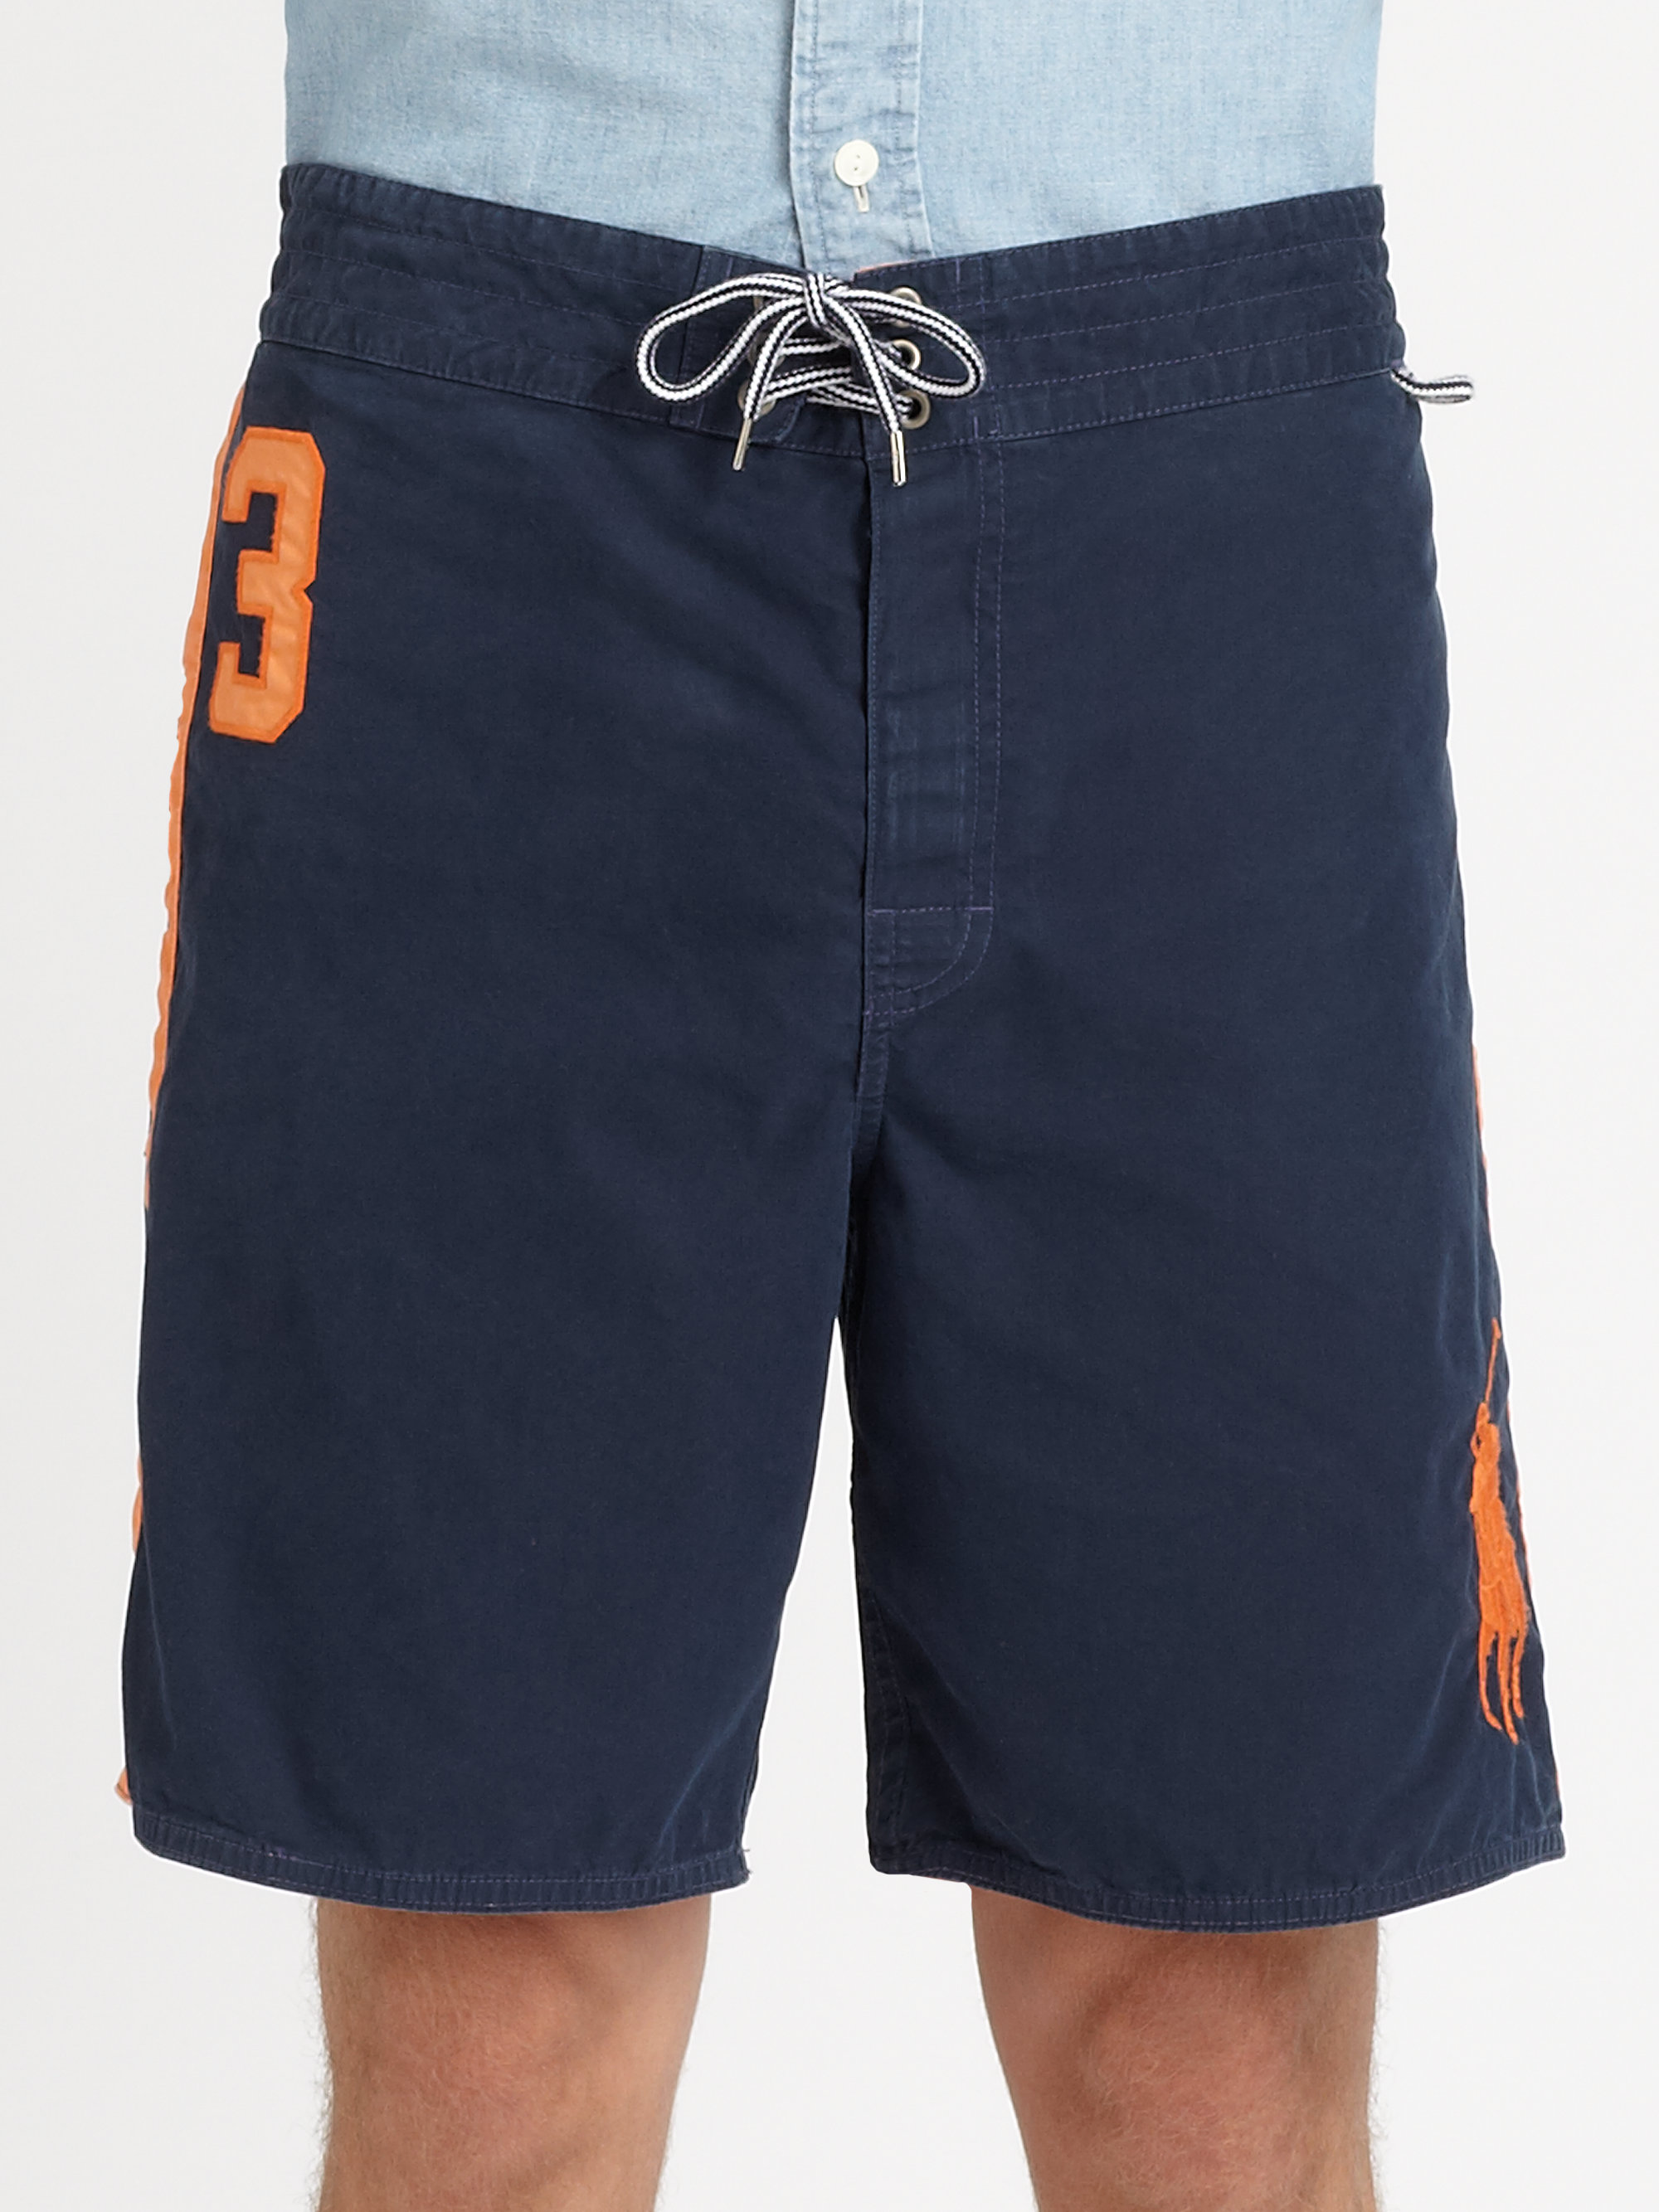 ccfc8e3ad6 ... canada lyst polo ralph lauren sanibel swim trunks in blue for men cc9e5  66c9c